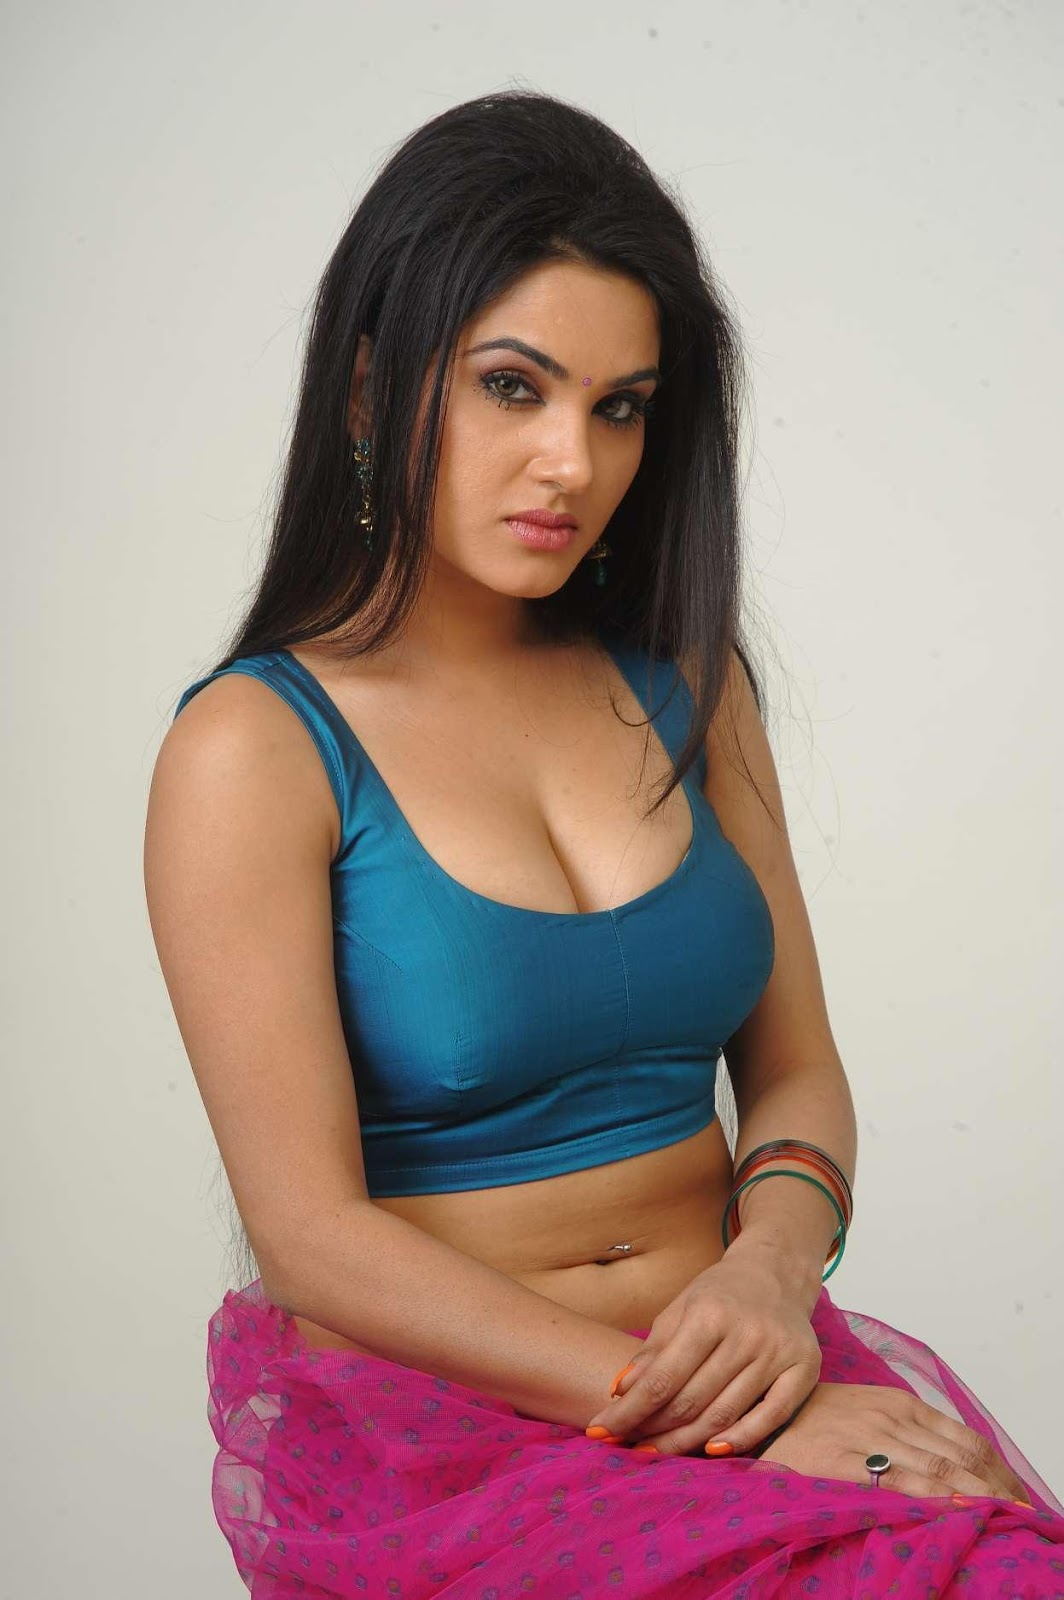 http://3.bp.blogspot.com/-4P9Cyv_ikUU/UROXJx0m3qI/AAAAAAAAB4E/CDlCOsWKi2E/s1600/Large+psupero+collections+of+real+life+Indian+as+Aunties+and+Bhabhi,Pictures+of+stunning+NRI,Punjabi,Mumbai,Delhi,Temil,Telugu,Mallu,Marathi,Desi+super+Indian+Teacher,Mobile+super+as+Wallpapers2.jpg